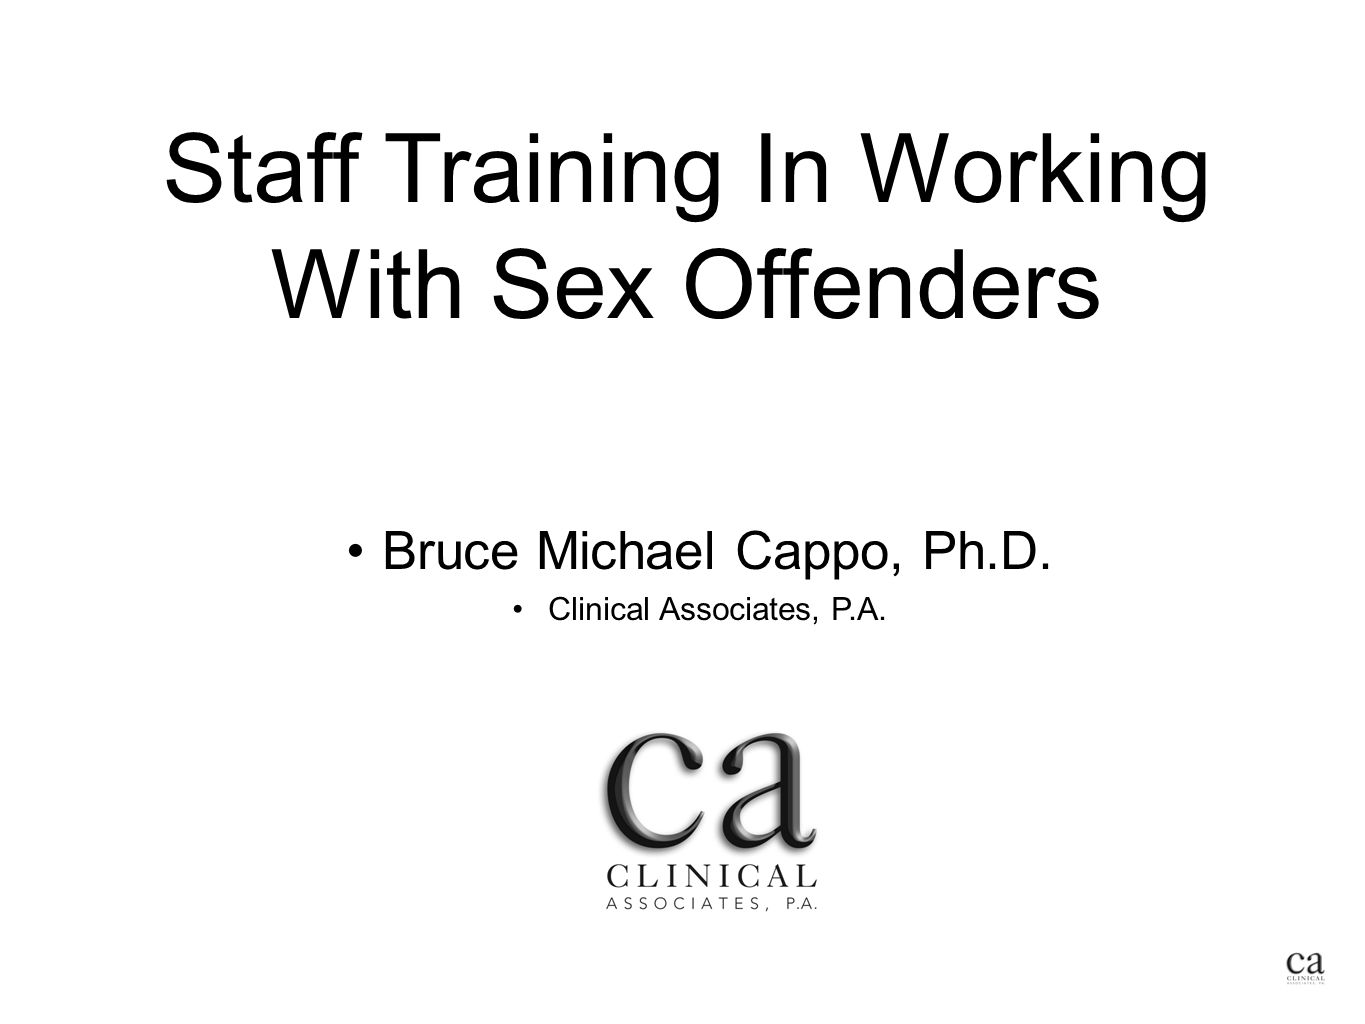 sex offender training for professionals jpg 1500x1000